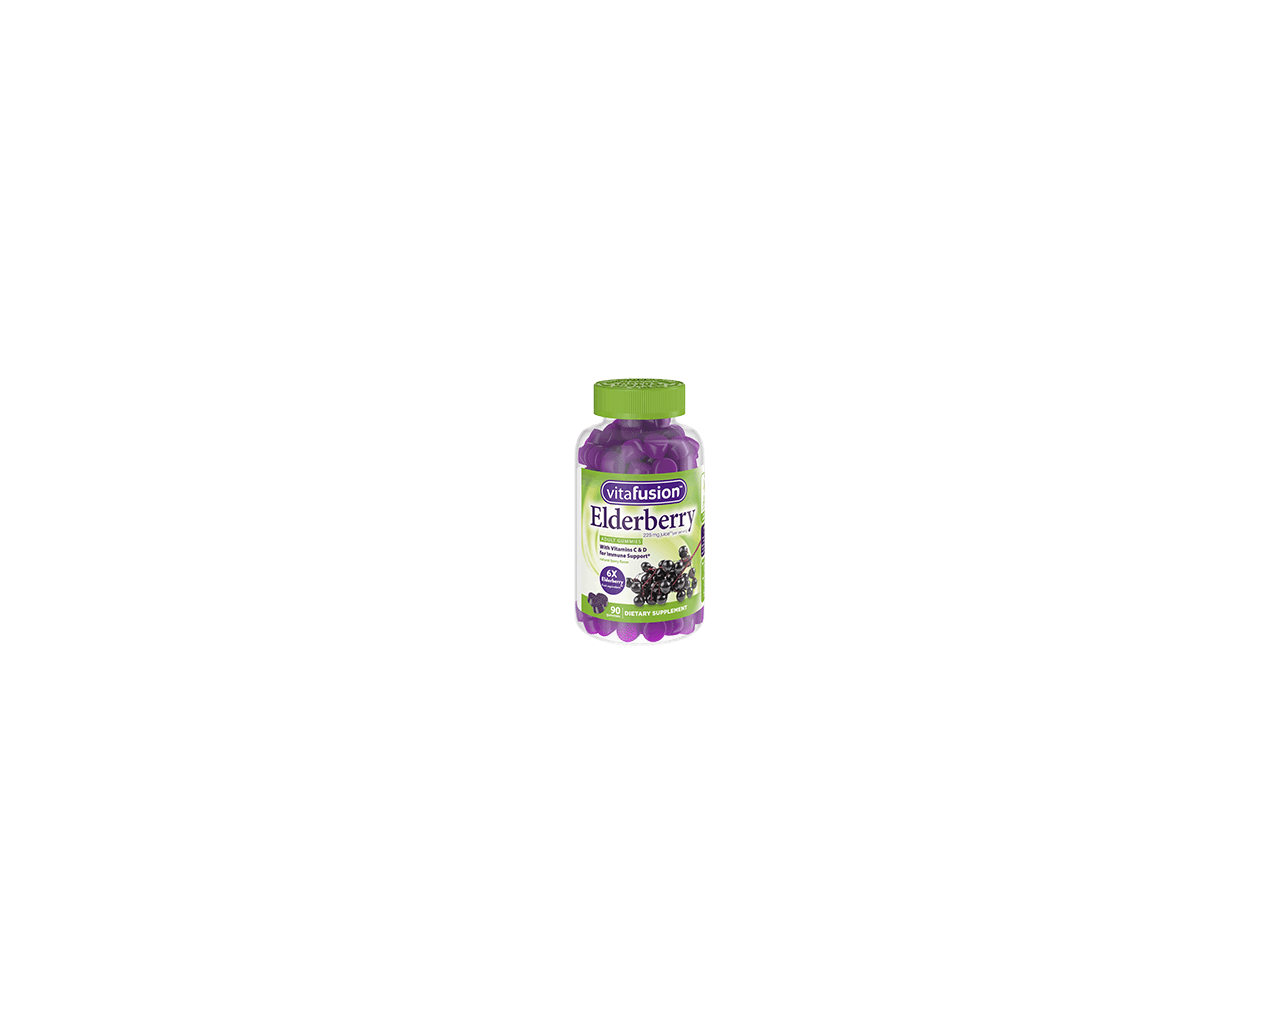 Vitafusion Elderberry